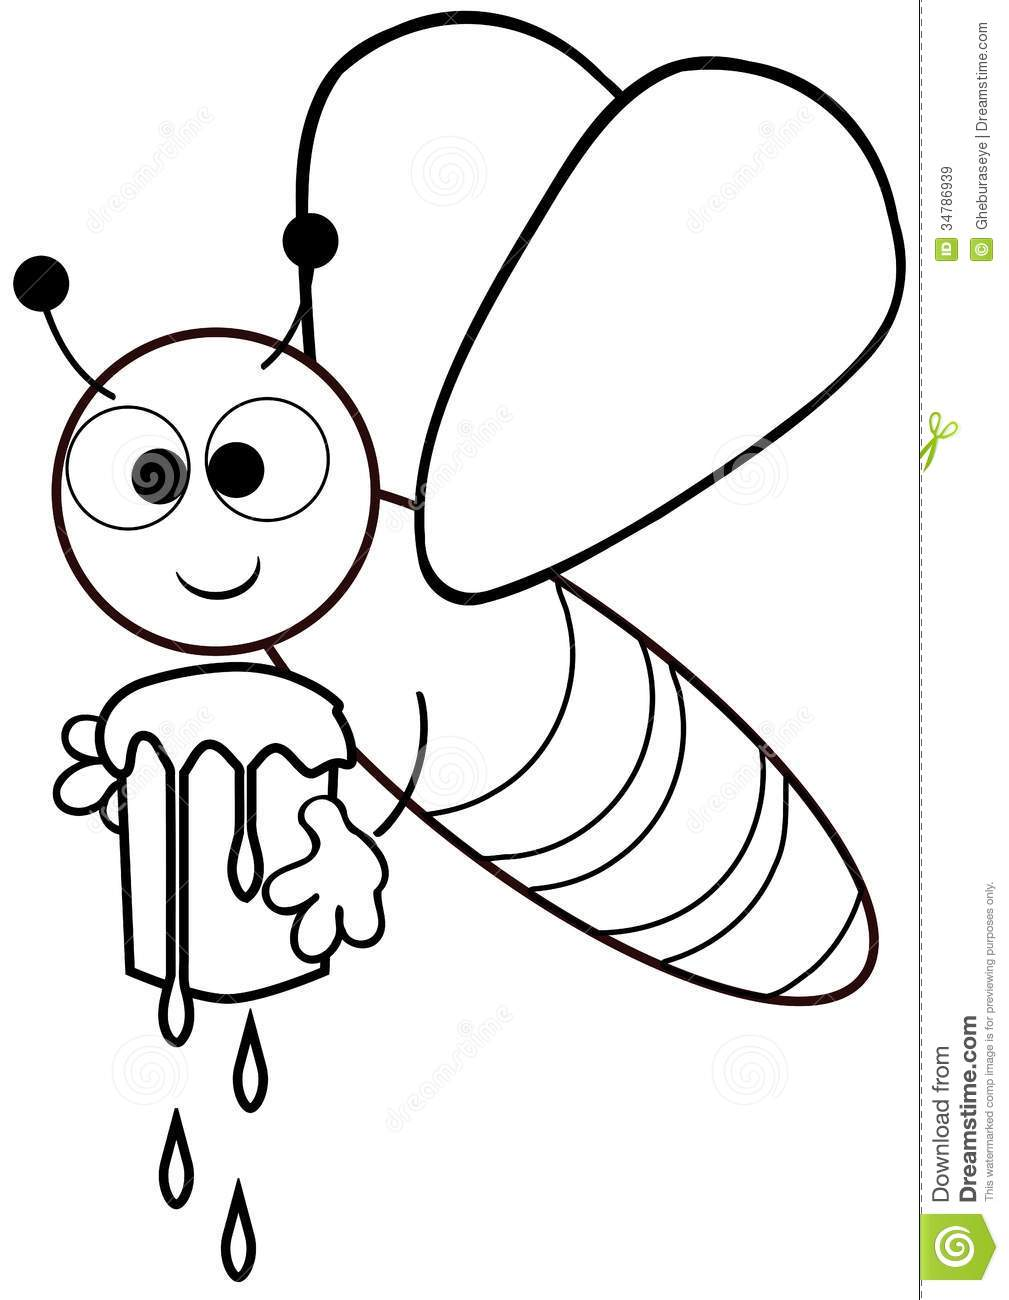 Color The Bee Royalty Free Stock Images